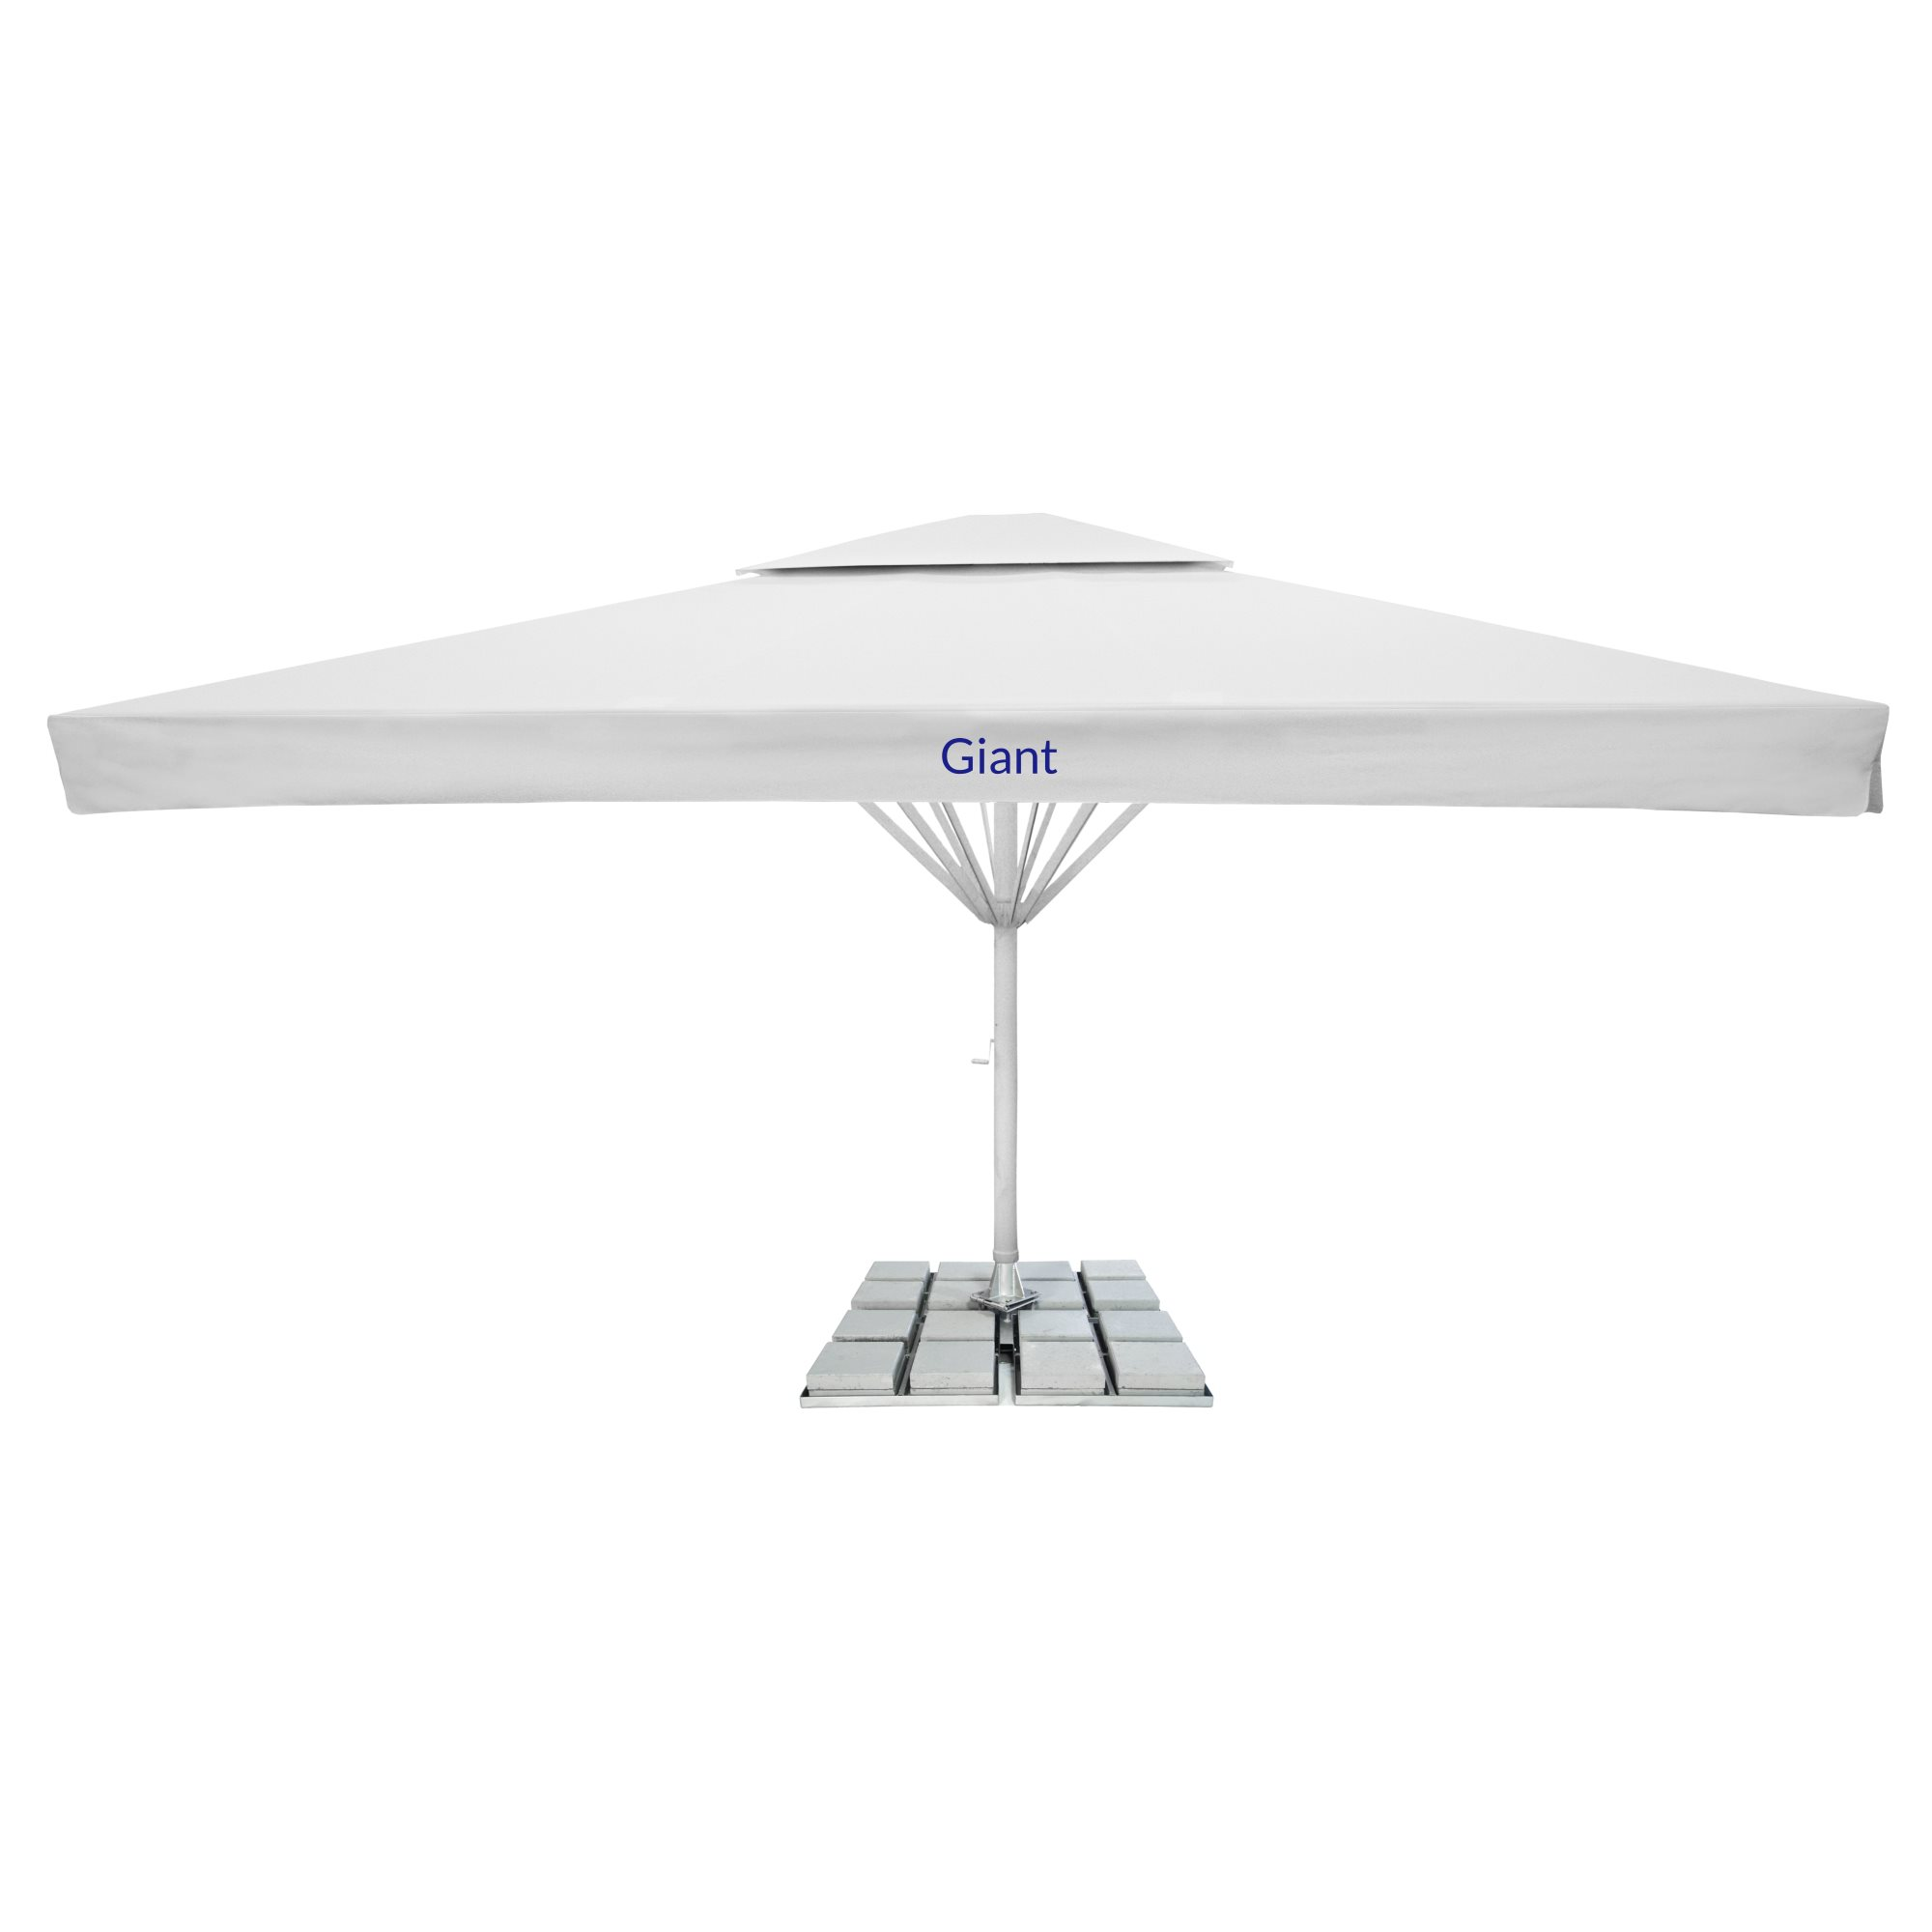 6. Giant Parasol Square 7m - with fairing and 2nd roof